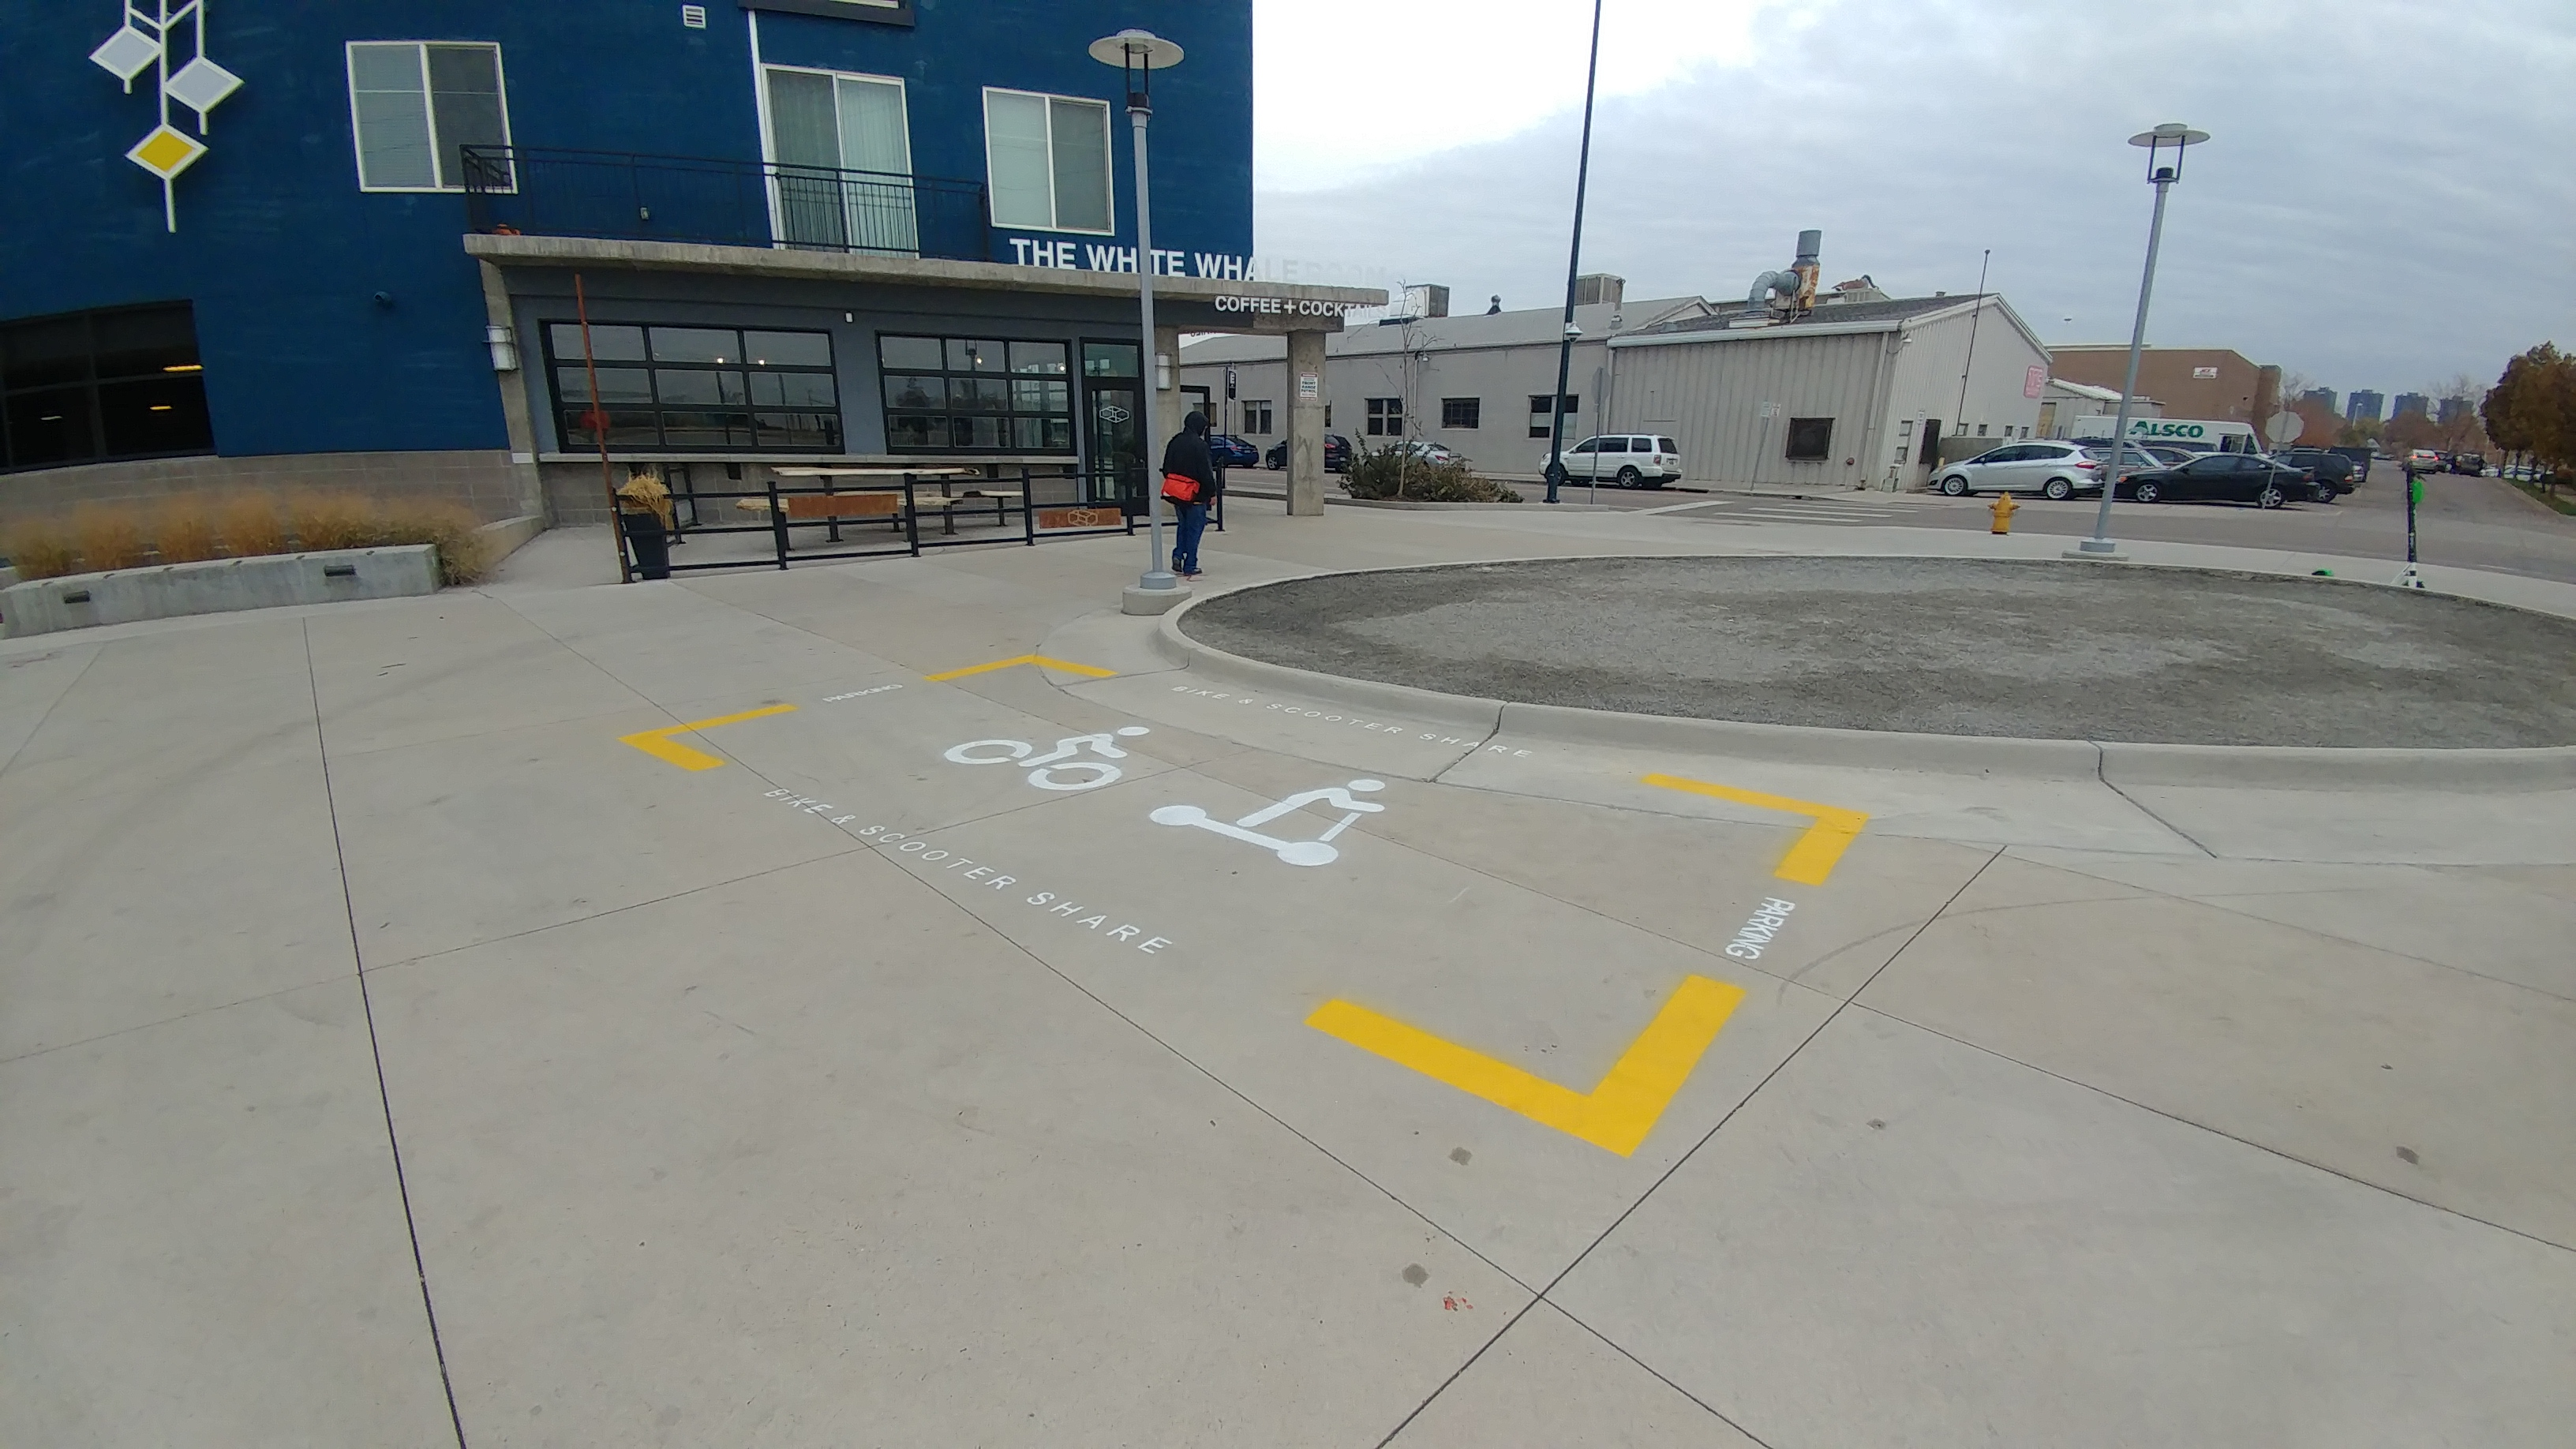 Stenciled parking areas for dockless bikes and scooters